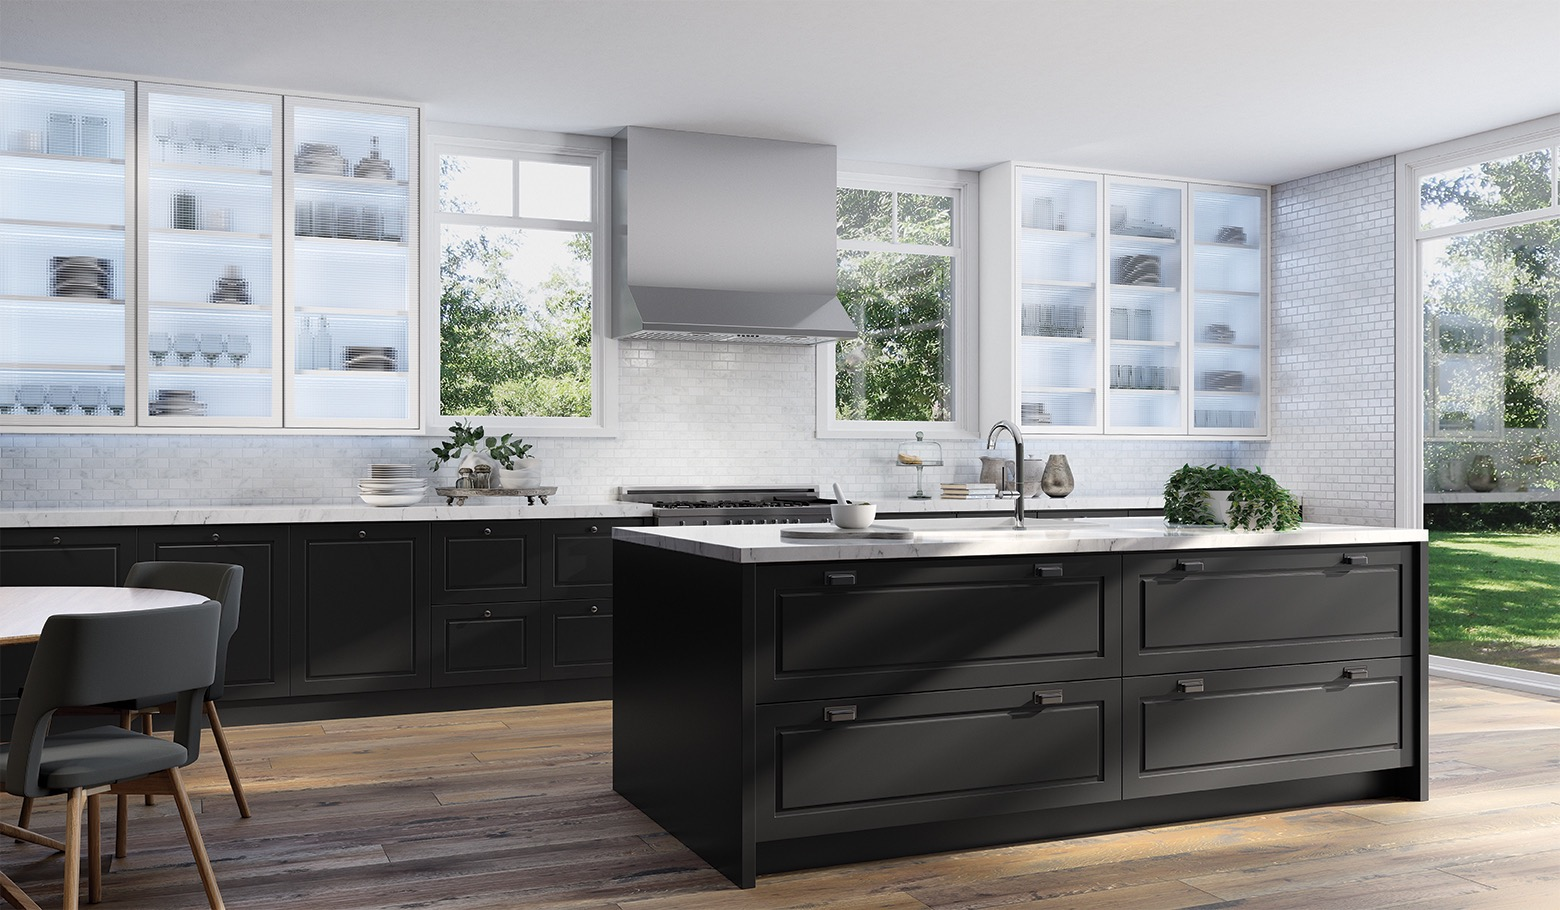 Amazing Black And White Kitchen With Marble Backsplash White Marble Kitchen Kitchen Marble New Kitchen Interior